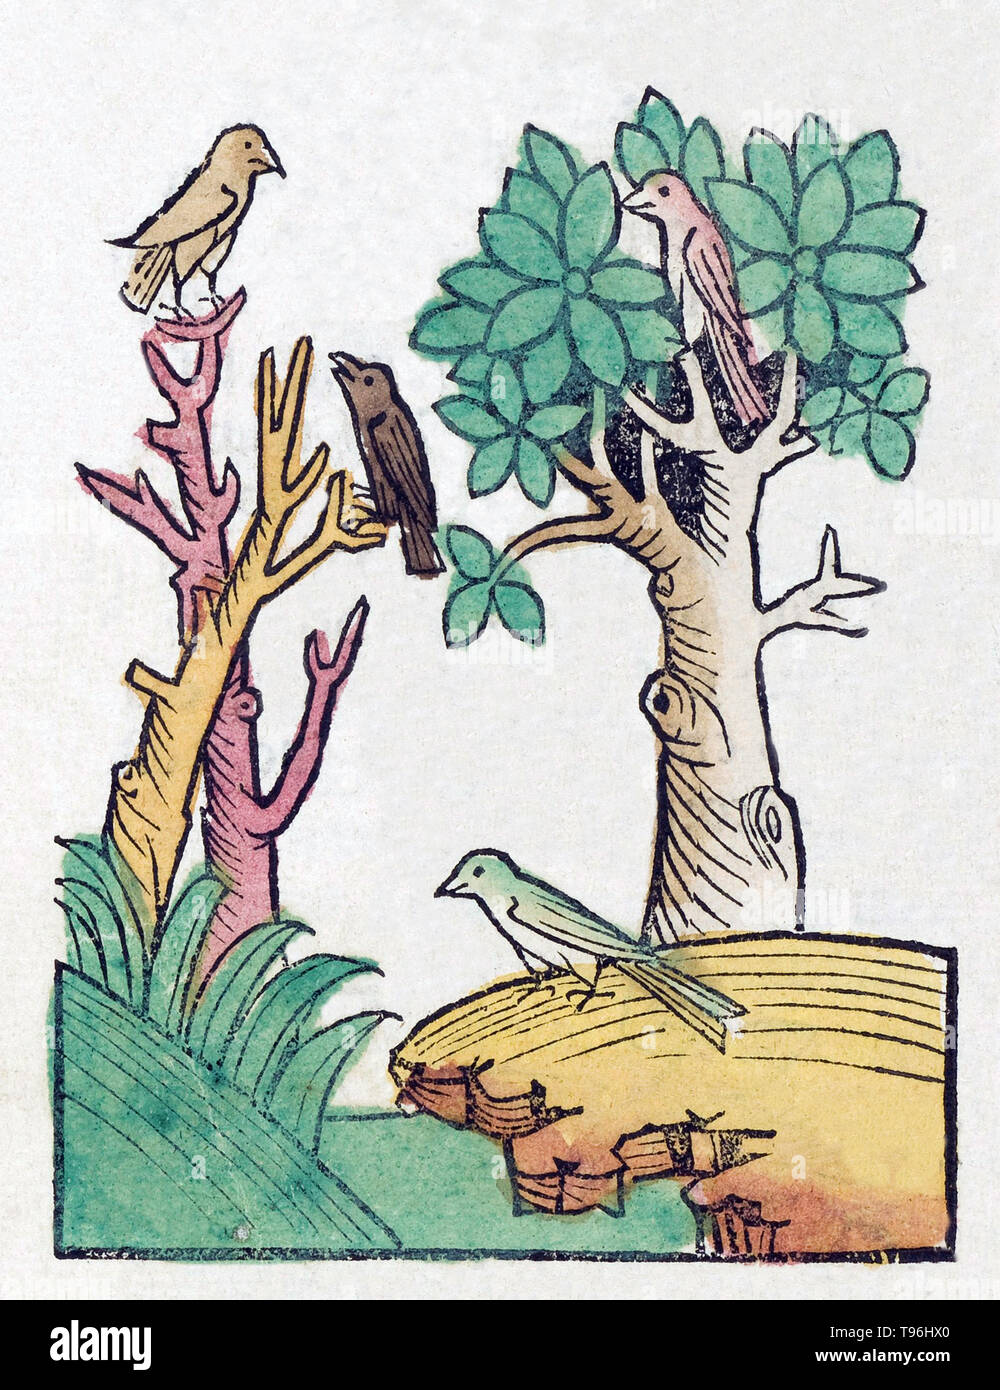 Unidentified birds in trees. The Hortus Sanitatis (Garden of Health), the first natural history encyclopedia, was published by Jacob Meydenbach in Germany, 1491.  He describes plants and animals (both real and mythical) together with minerals and various trades, with their medicinal value and method of preparation. The hand-colored woodcut illustrations are stylized but often easily recognizable. 1547 edition. - Stock Image